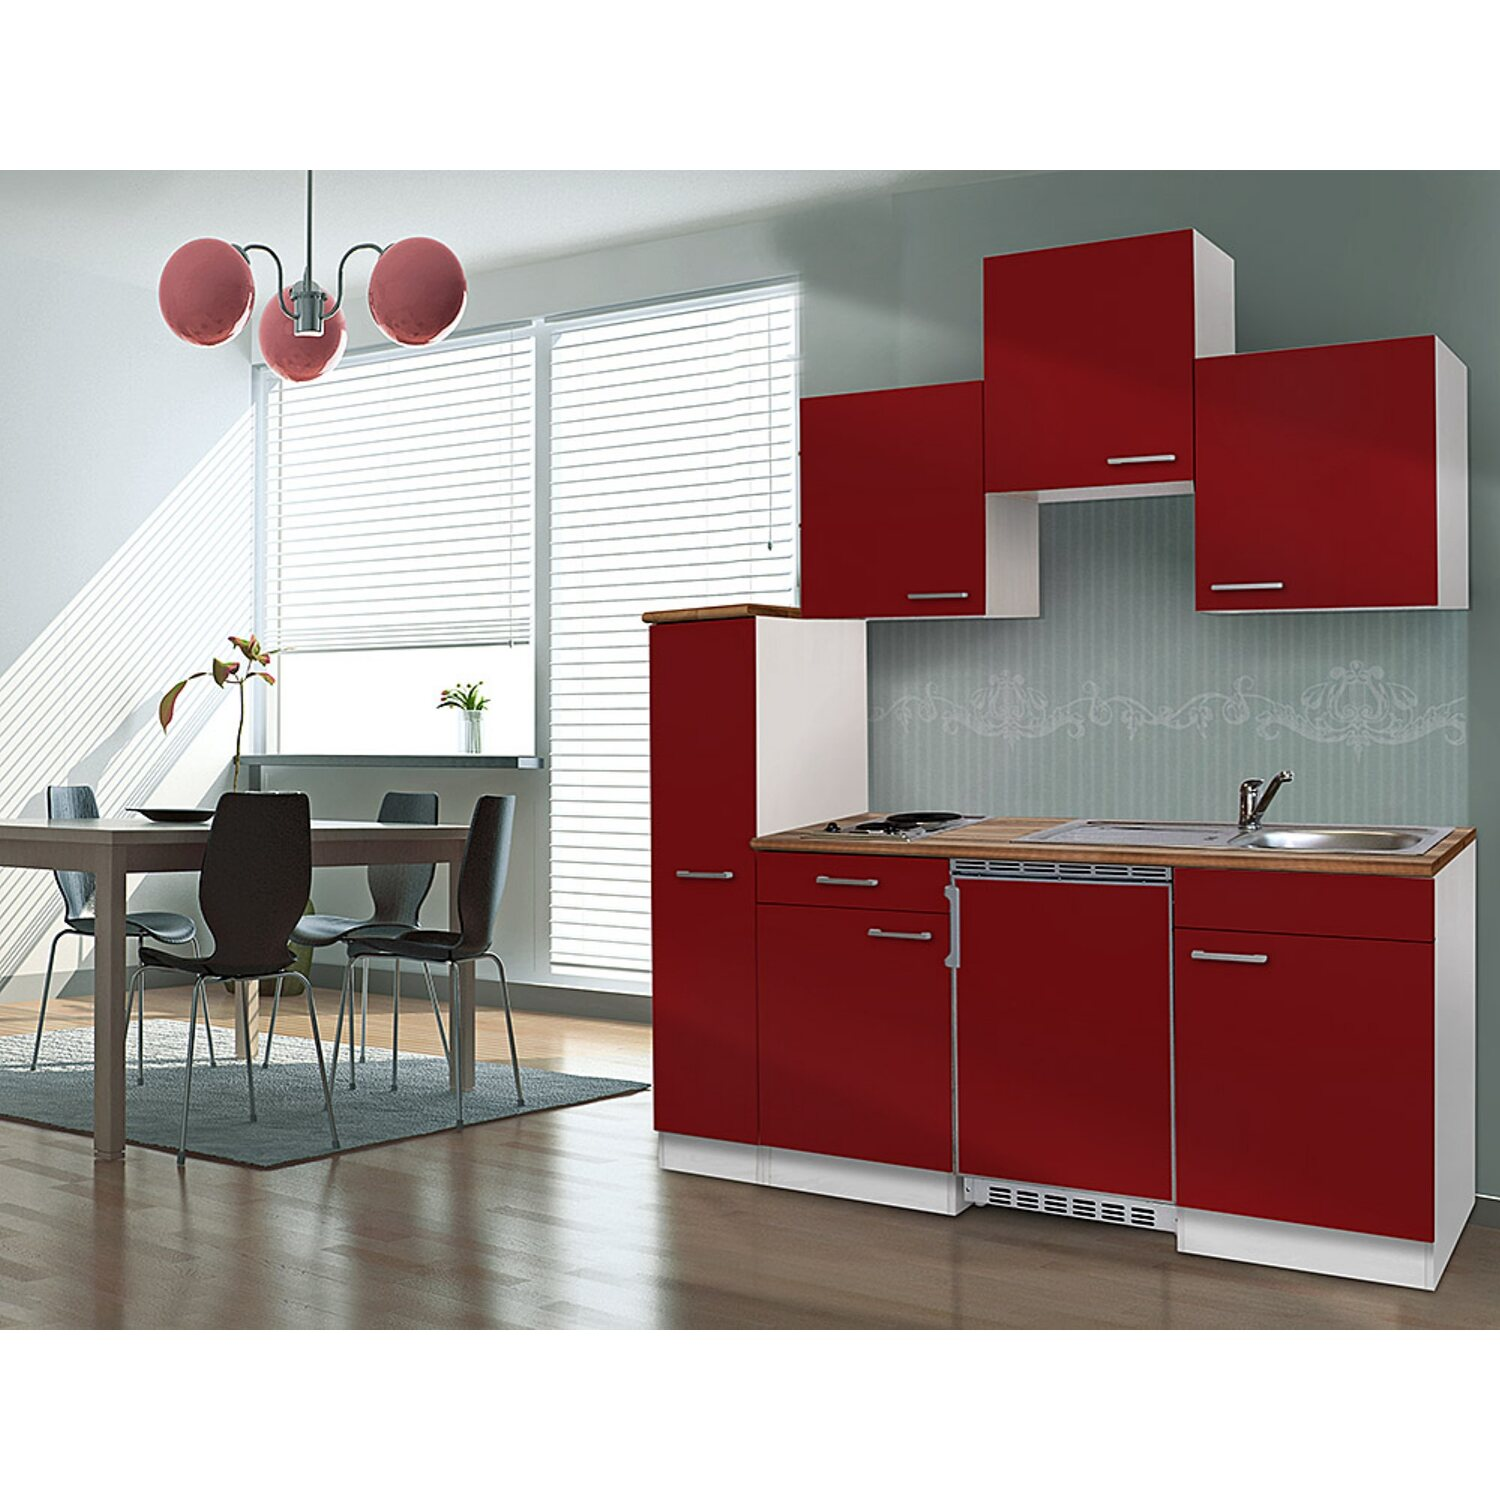 respekta k chenzeile kb180wr 180 cm rot wei kaufen bei obi. Black Bedroom Furniture Sets. Home Design Ideas